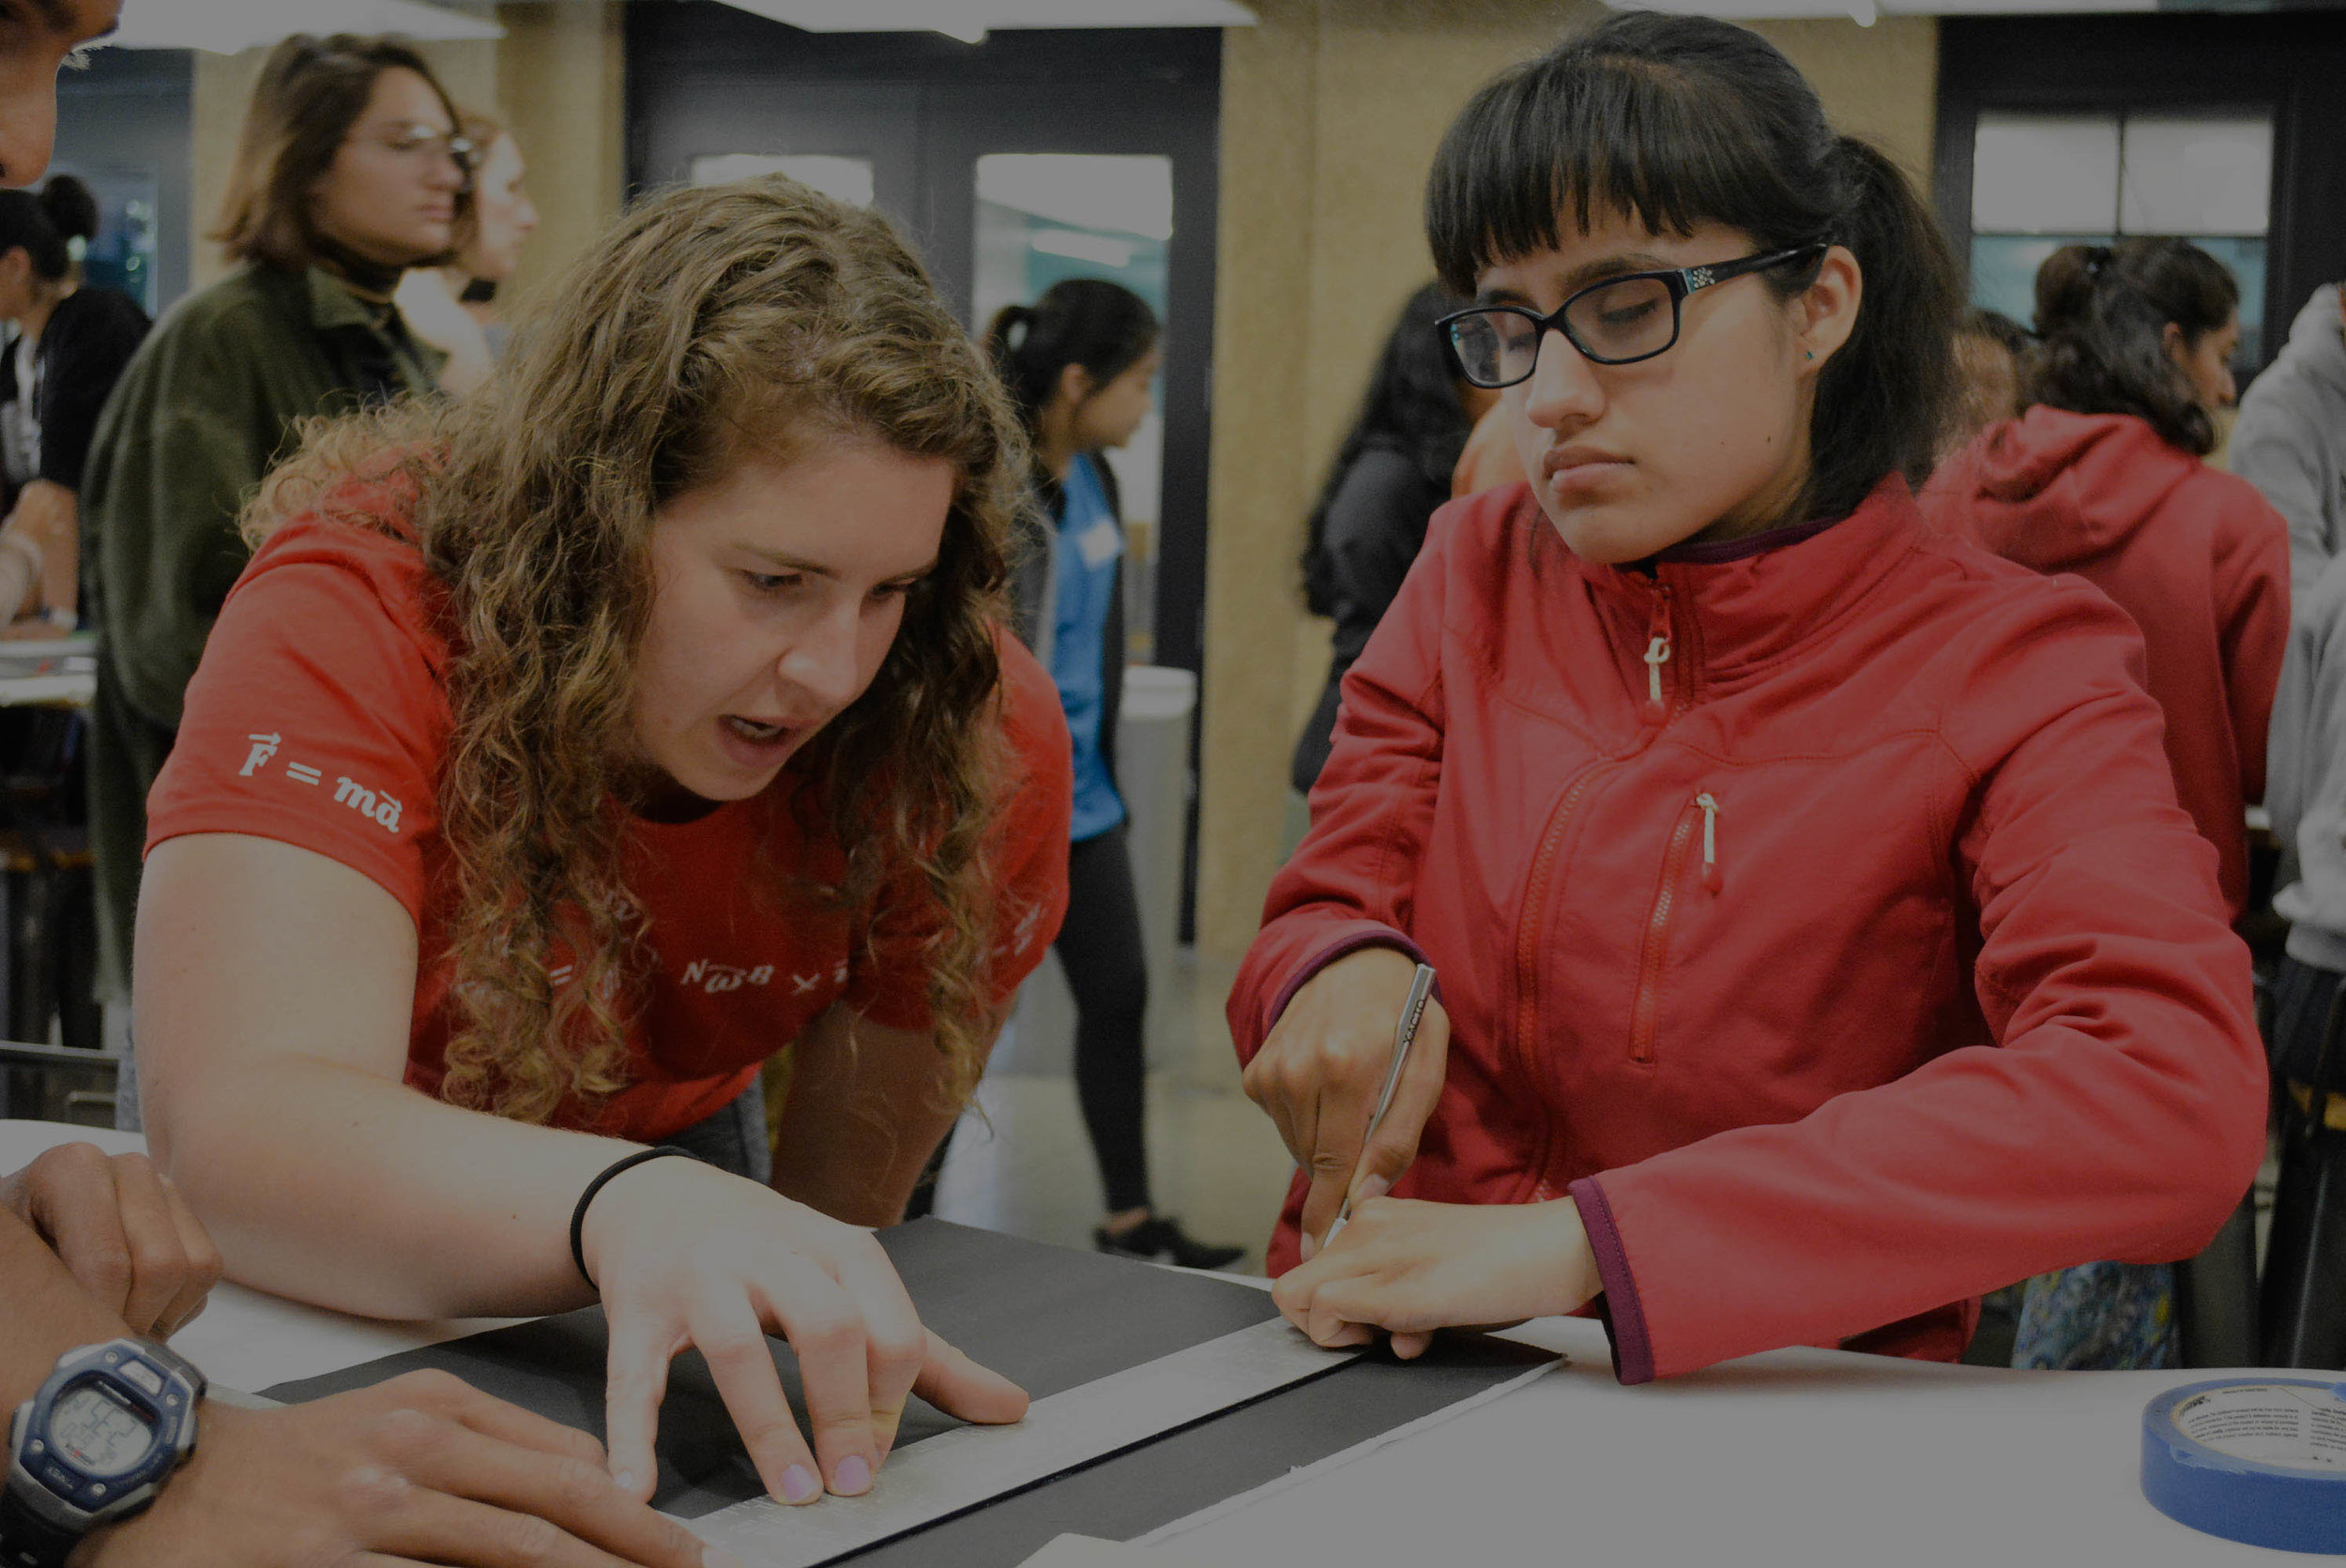 TECHNICAL LEAD FACILITATOR - USE YOUR DESIGN SKILLS, TECHNICAL KNOWLEDGE, AND MAKER EXPERIENCE TO KEEP TEAMS OF STUDENTS AND STAFF SAFE WHILE GUIDING THEM TO CREATE LIFE IMPROVING PRODUCTS.